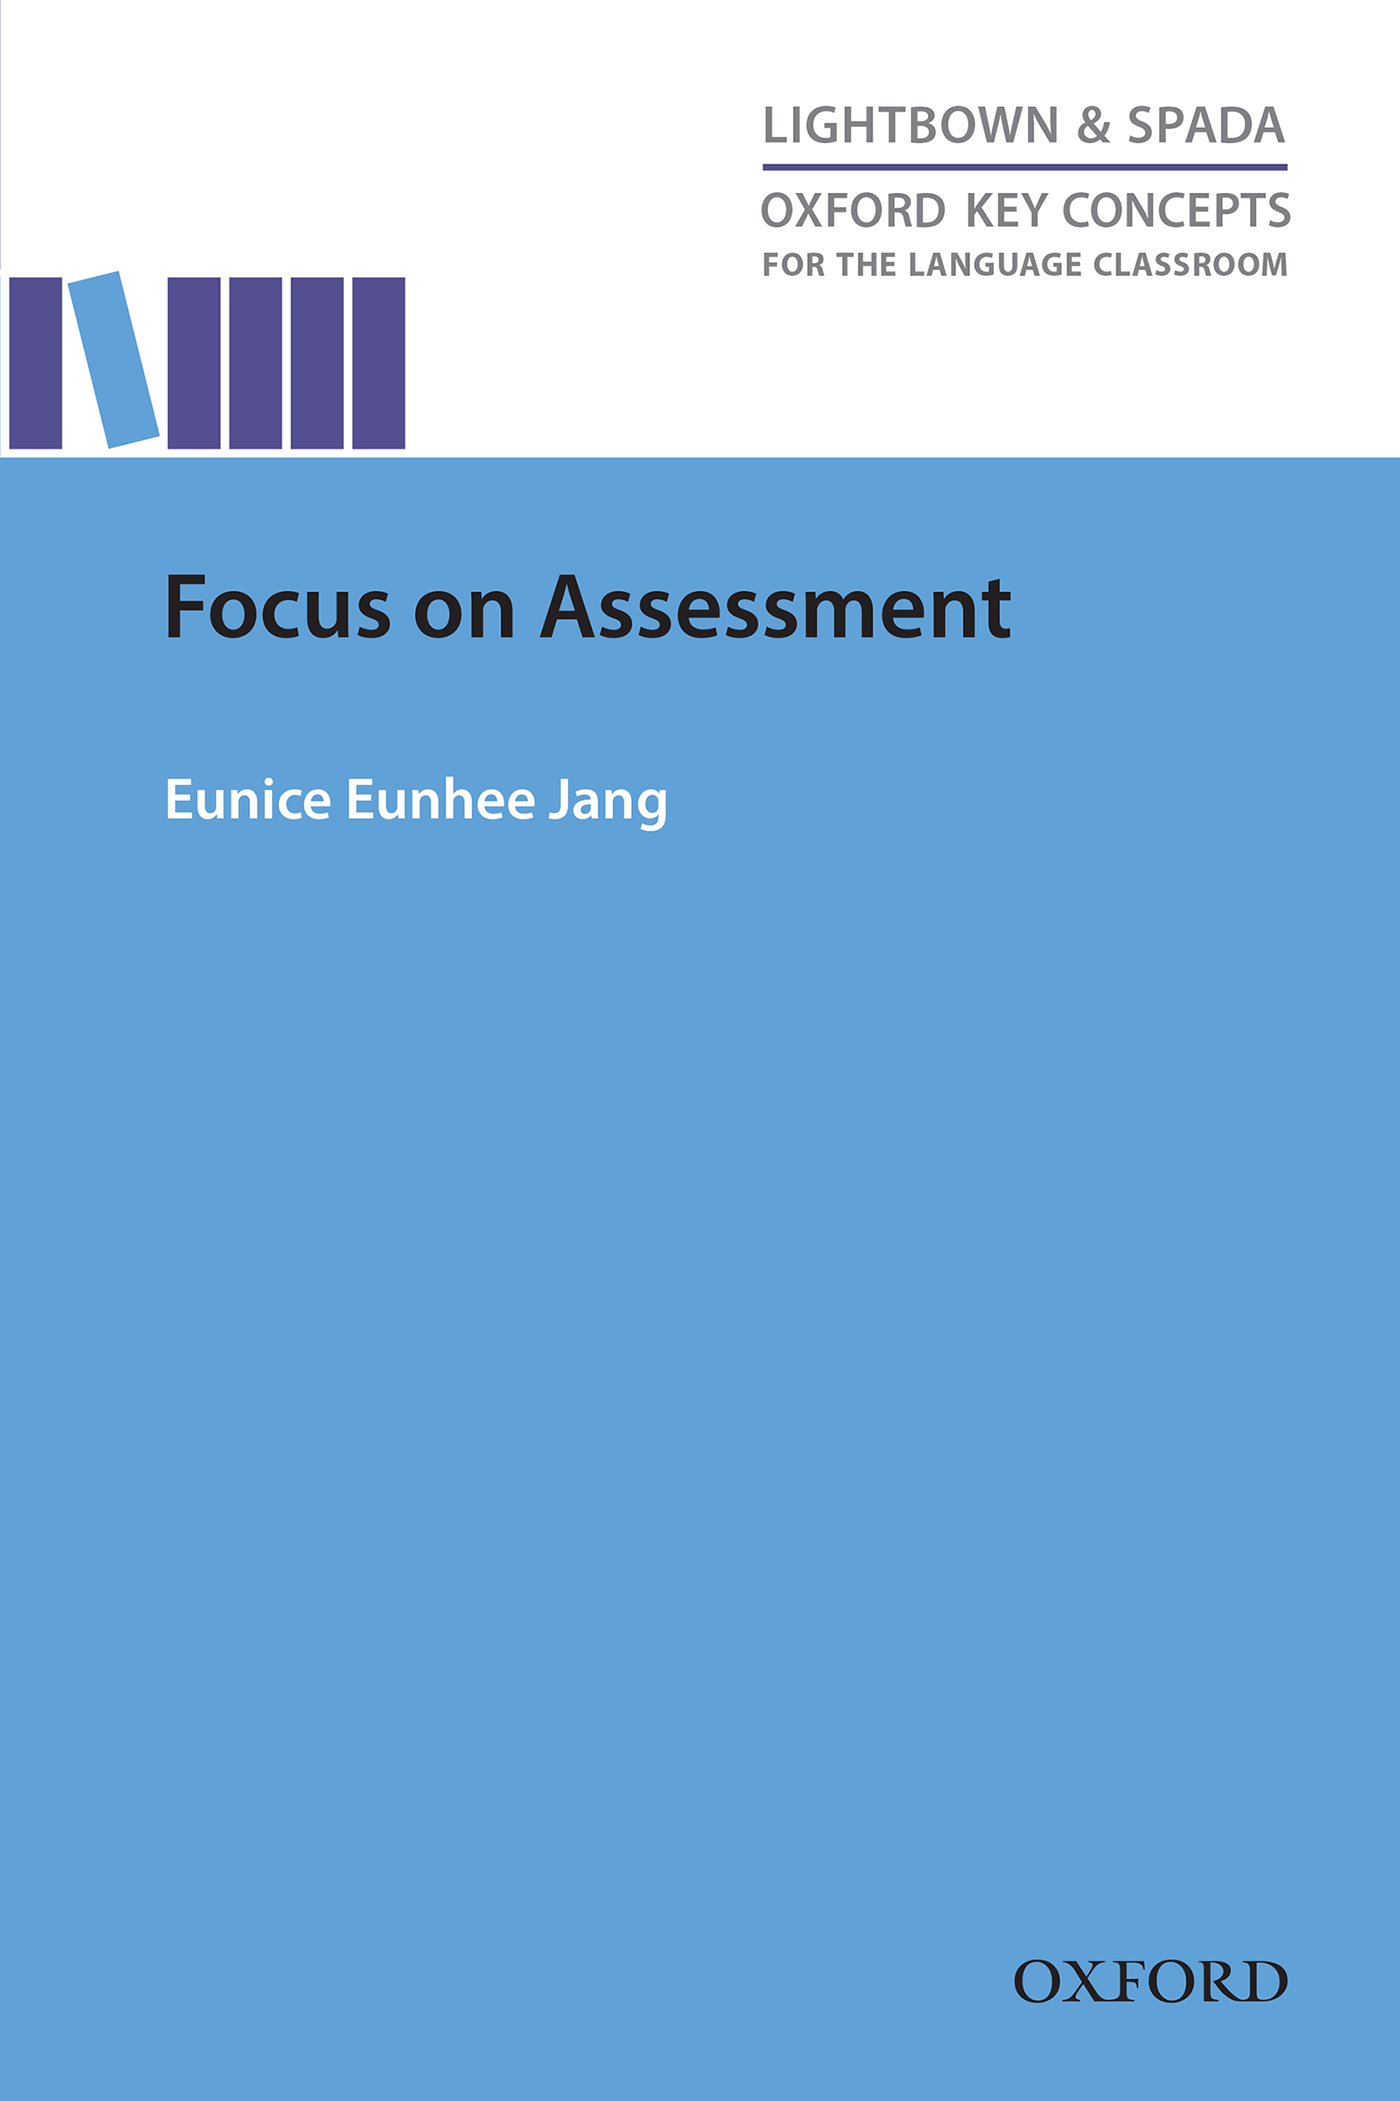 Eunice Eunhee Jang Focus on Assessment an assessment on tuna dolphin interaction